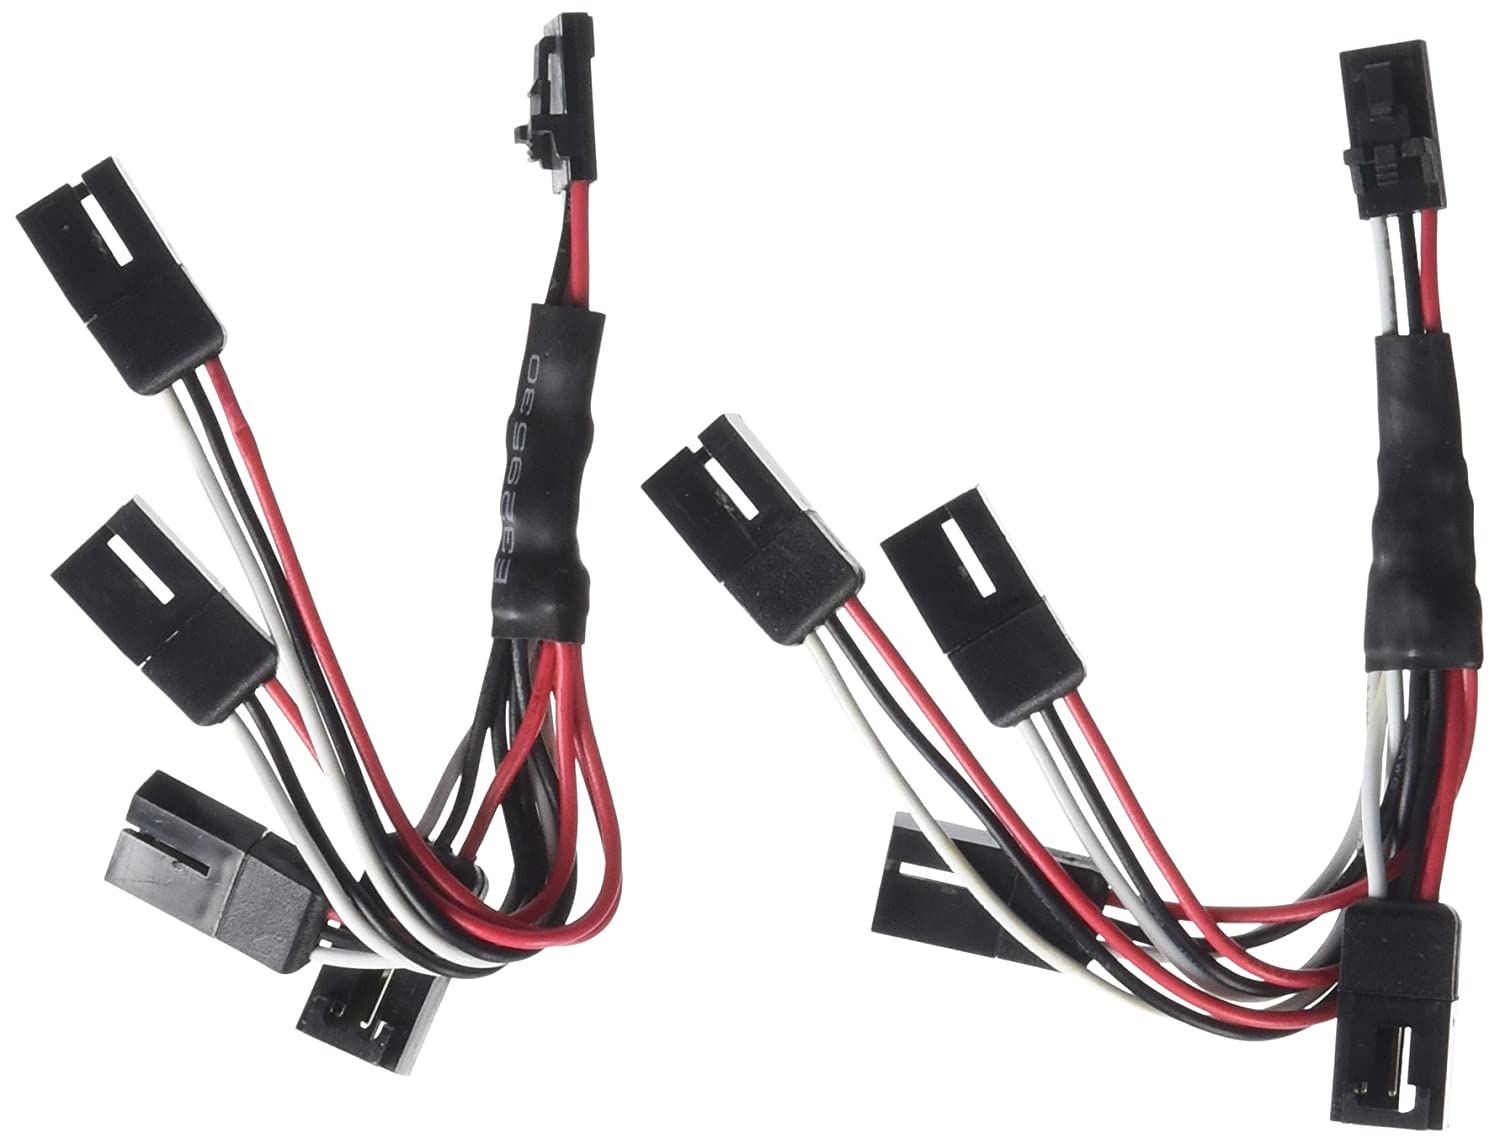 Kuryakyn 7302 Multi Plug-N-Play Harness